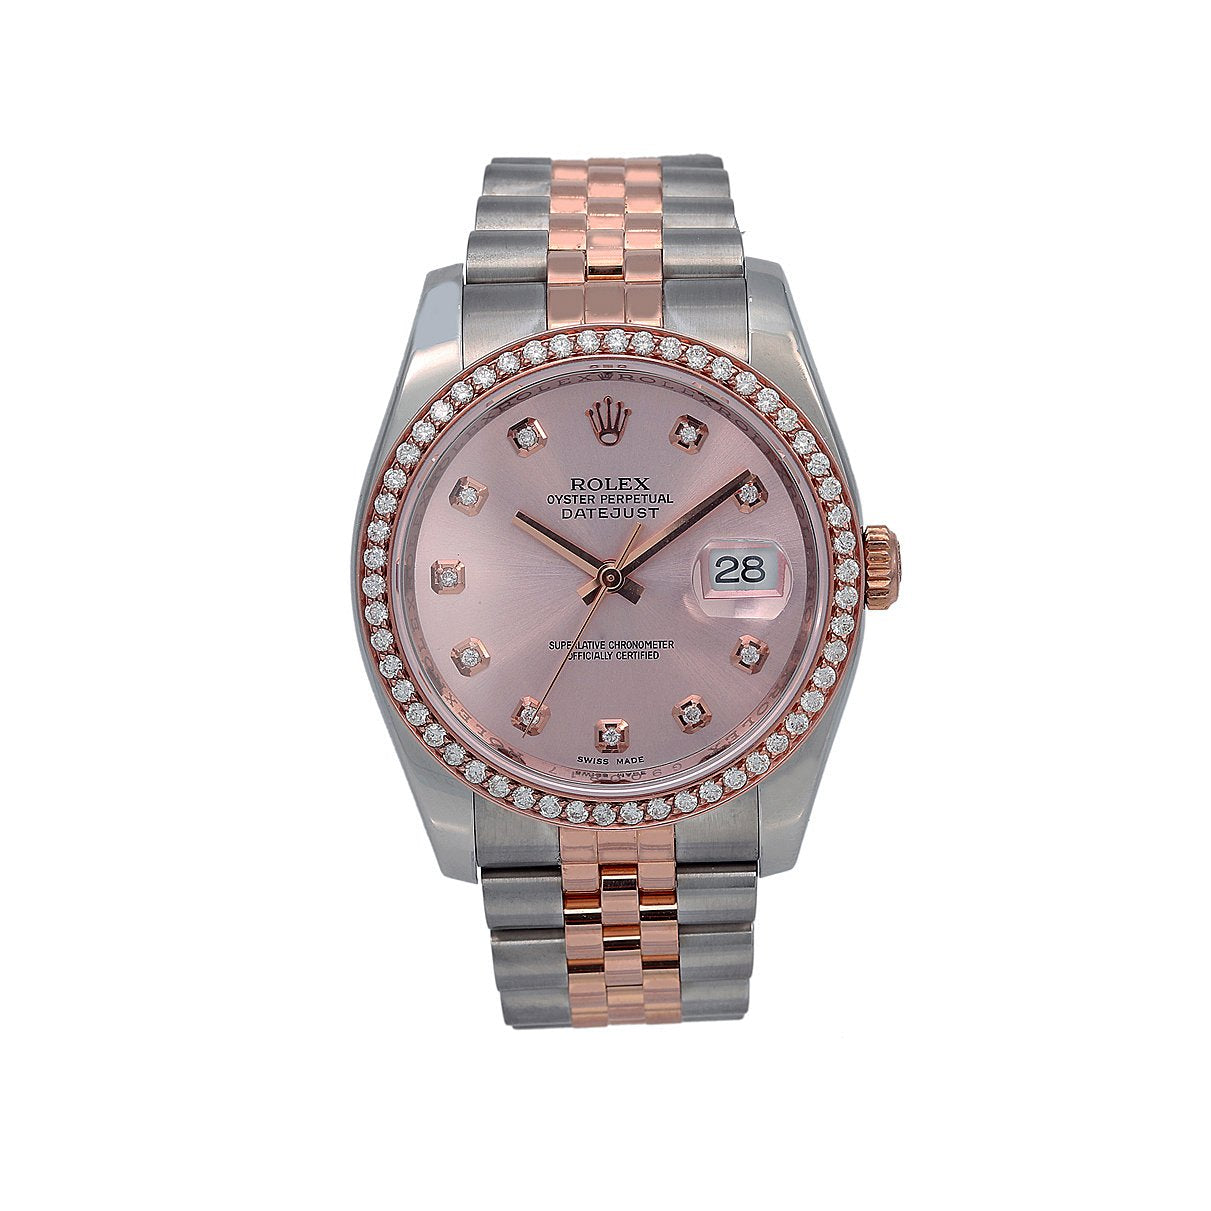 Rolex Datejust Diamond Watch, 116231 36mm, Pink Diamond Dial With 1.20 CT Diamonds